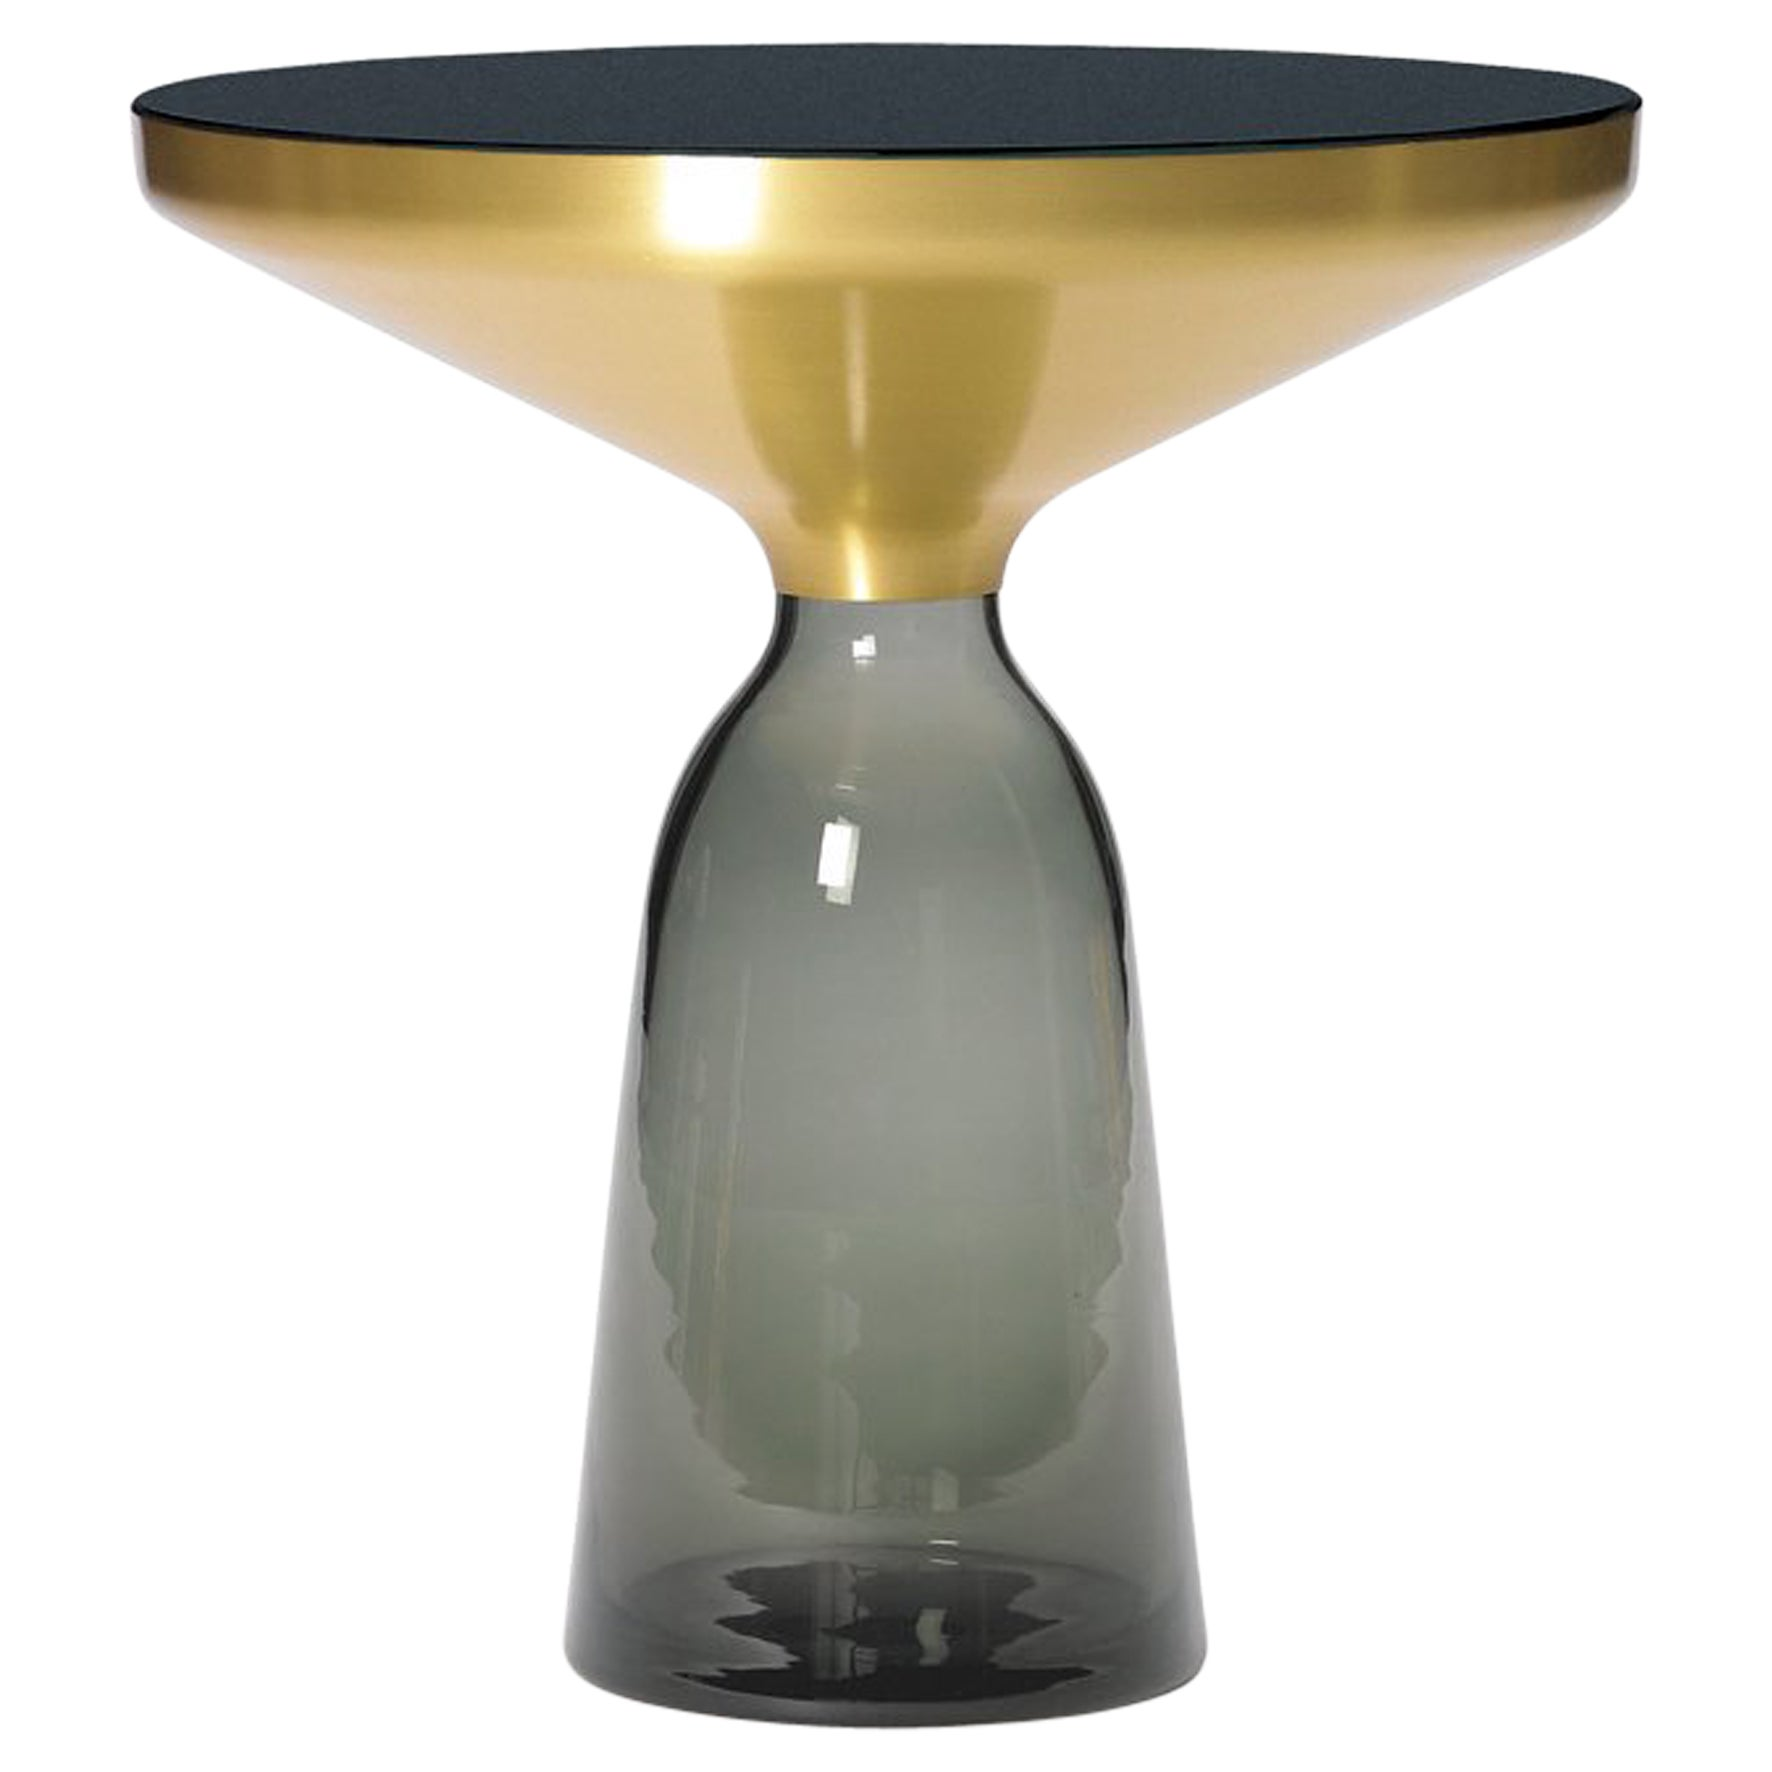 ClassiCon Bell Side Table in Brass and Quartz Grey by Sebastian Herkner